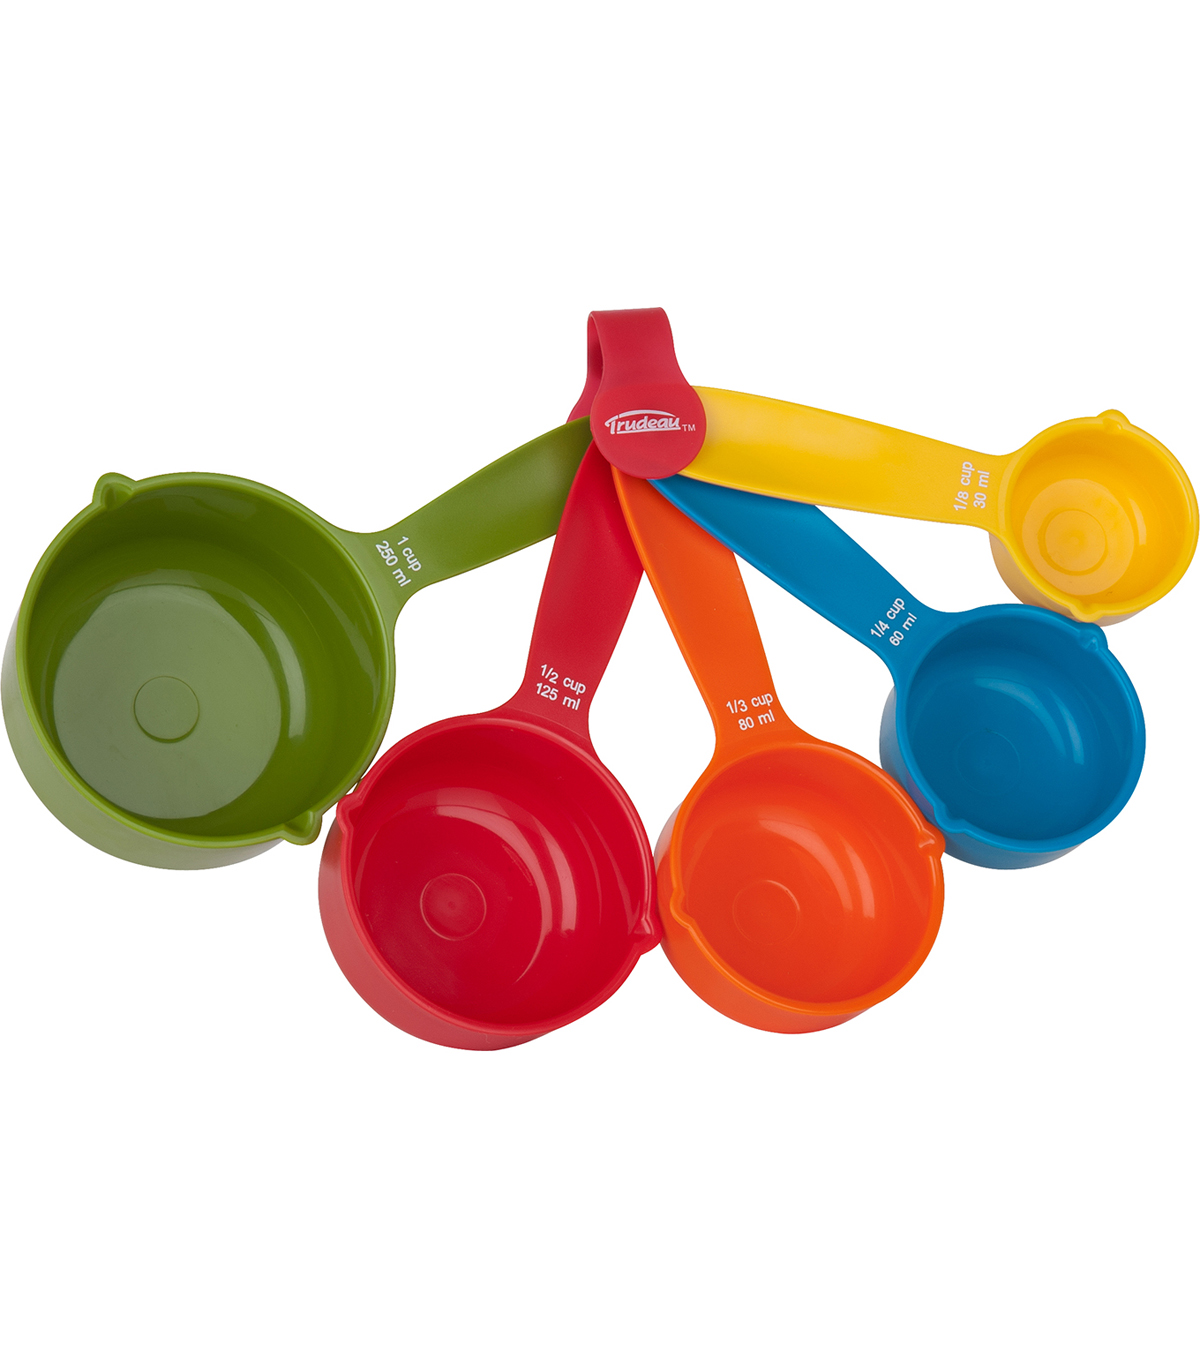 Measuring Cups-5pc